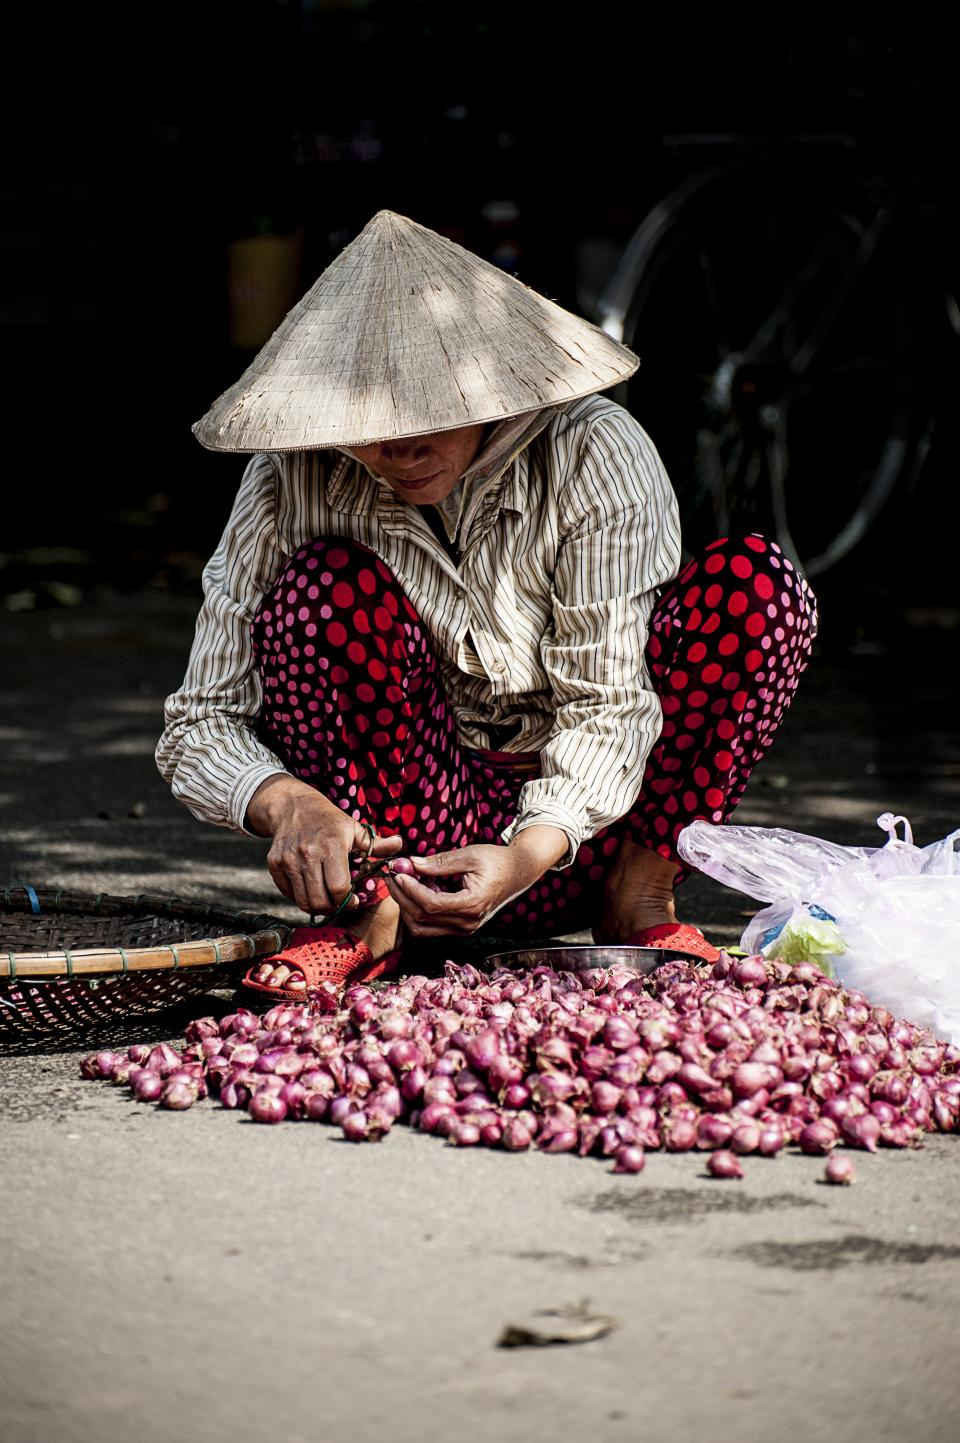 people woman labor onion poor sad vendor farmer